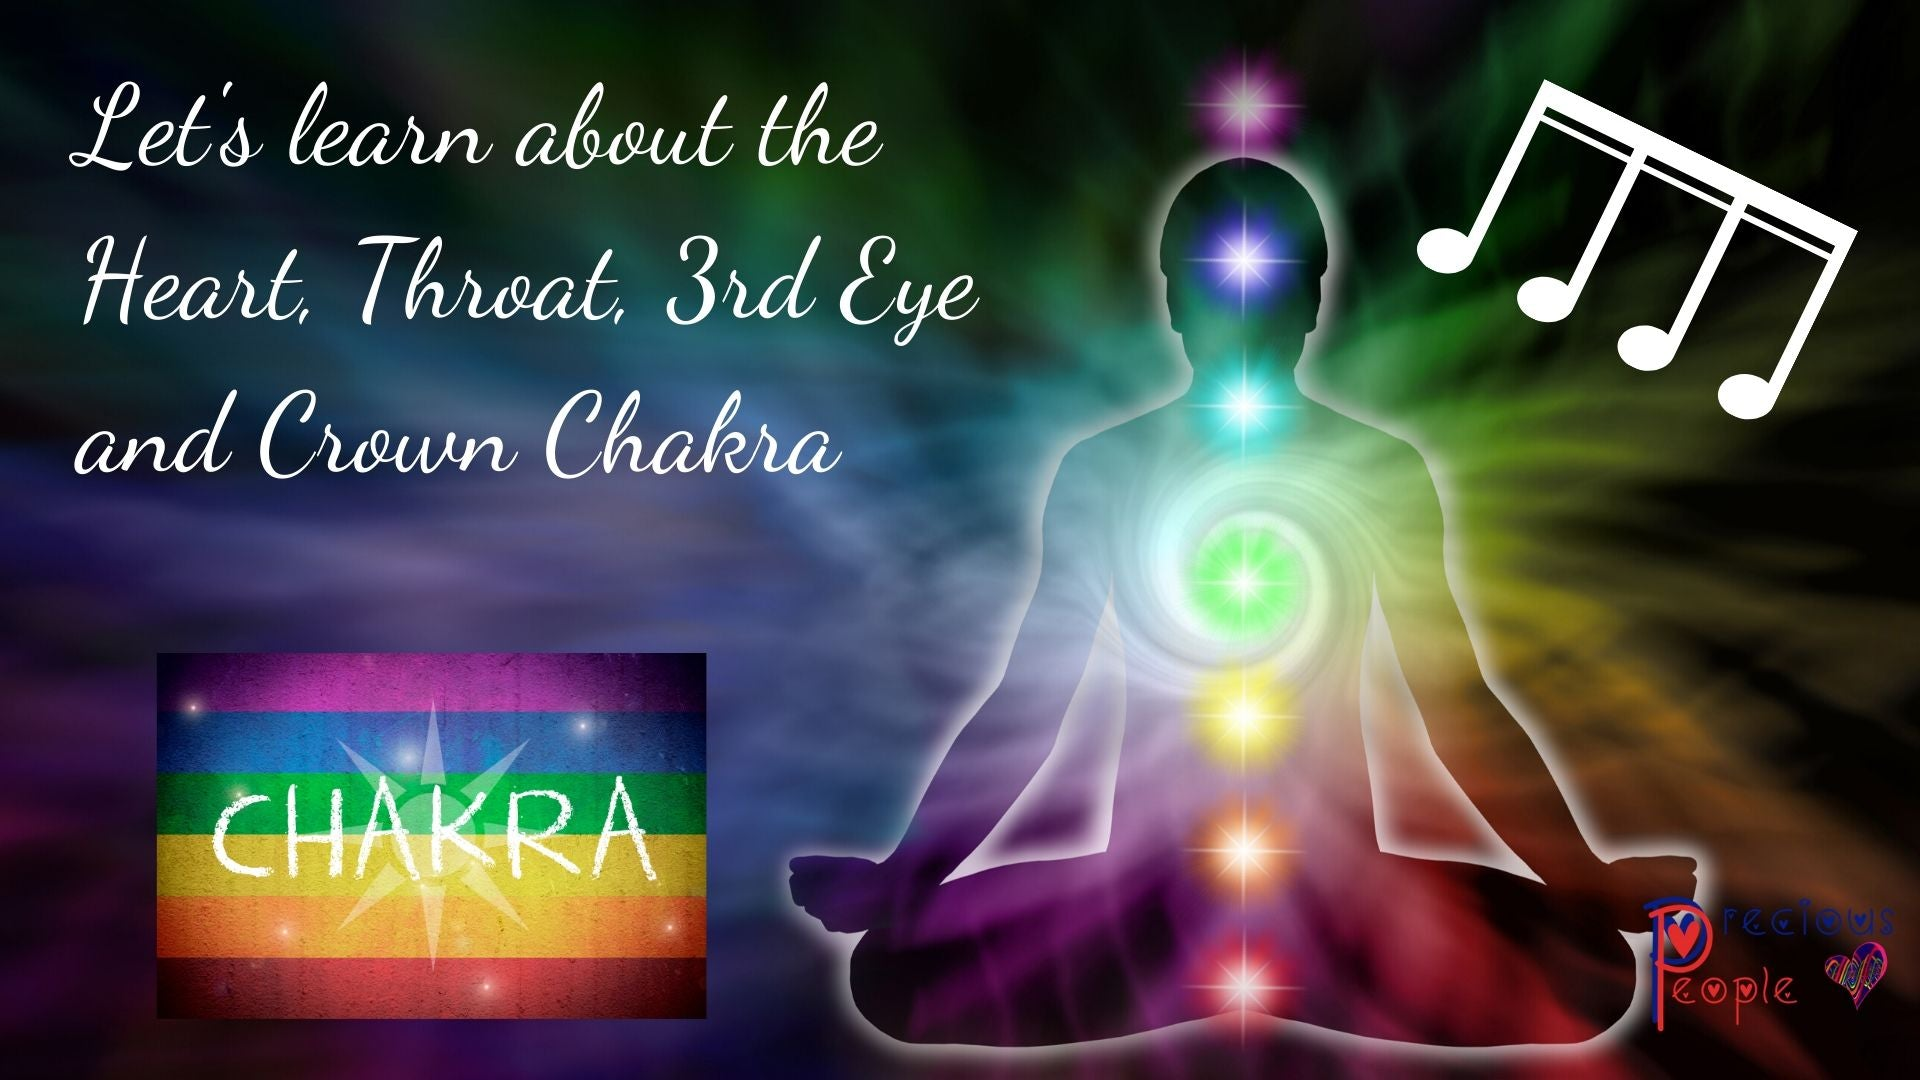 Group Chakra Health Chat and Sound Balance - Heart, Throat, 3rd Eye and Crown Chakra